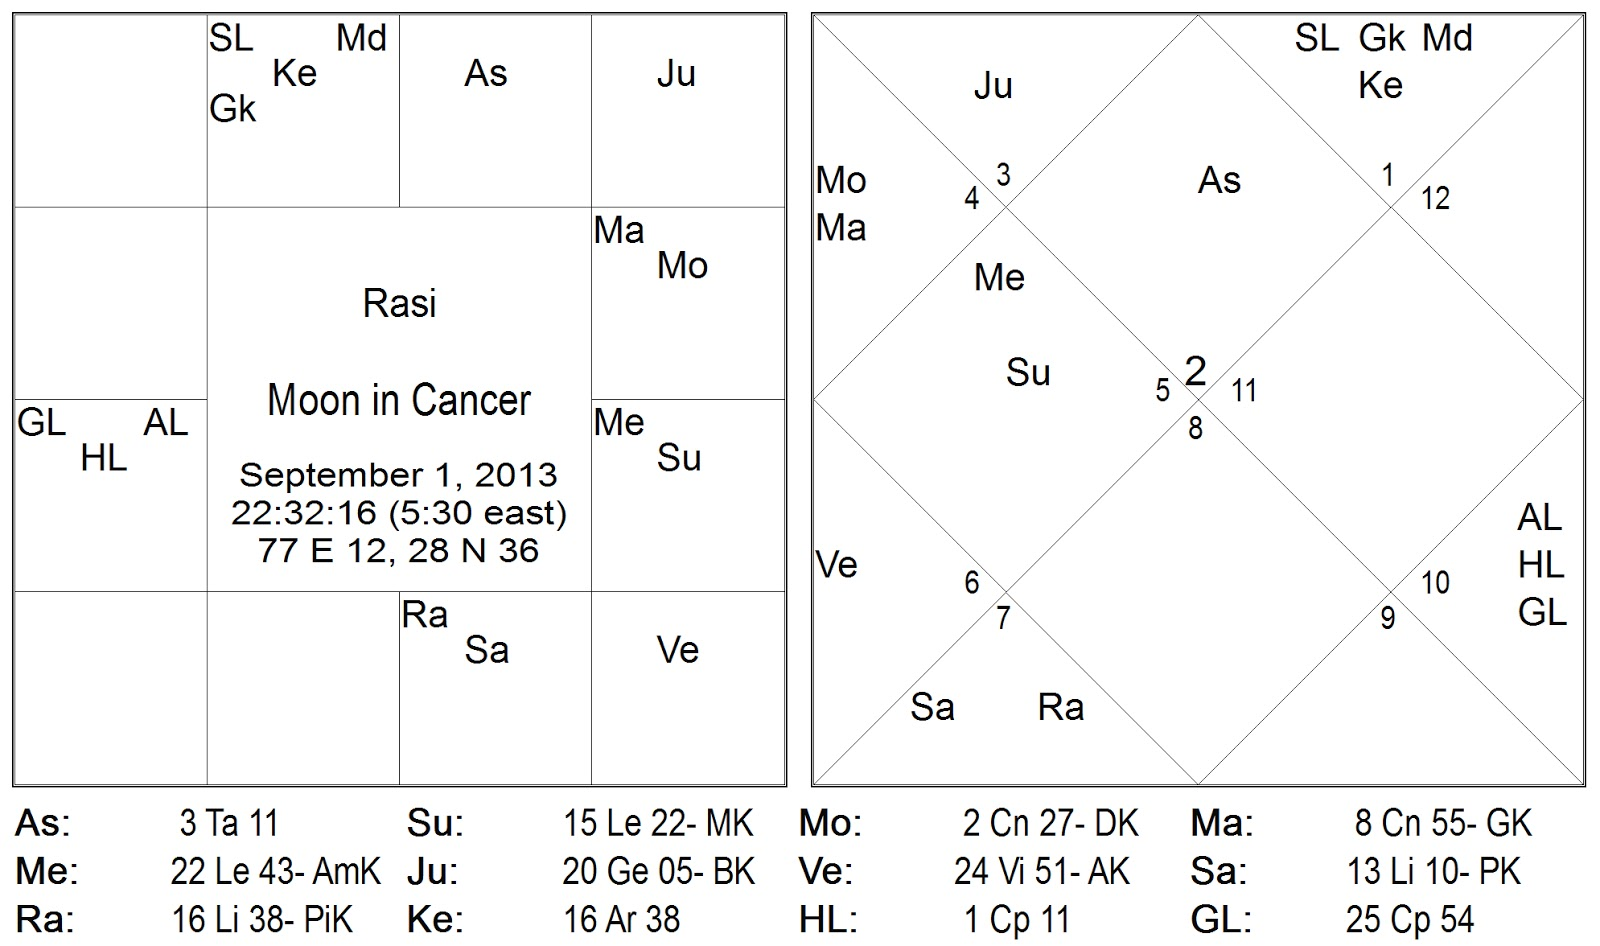 Repressed anger and complusive work moon in cancer chandra in karka rashi on 1st september 2013